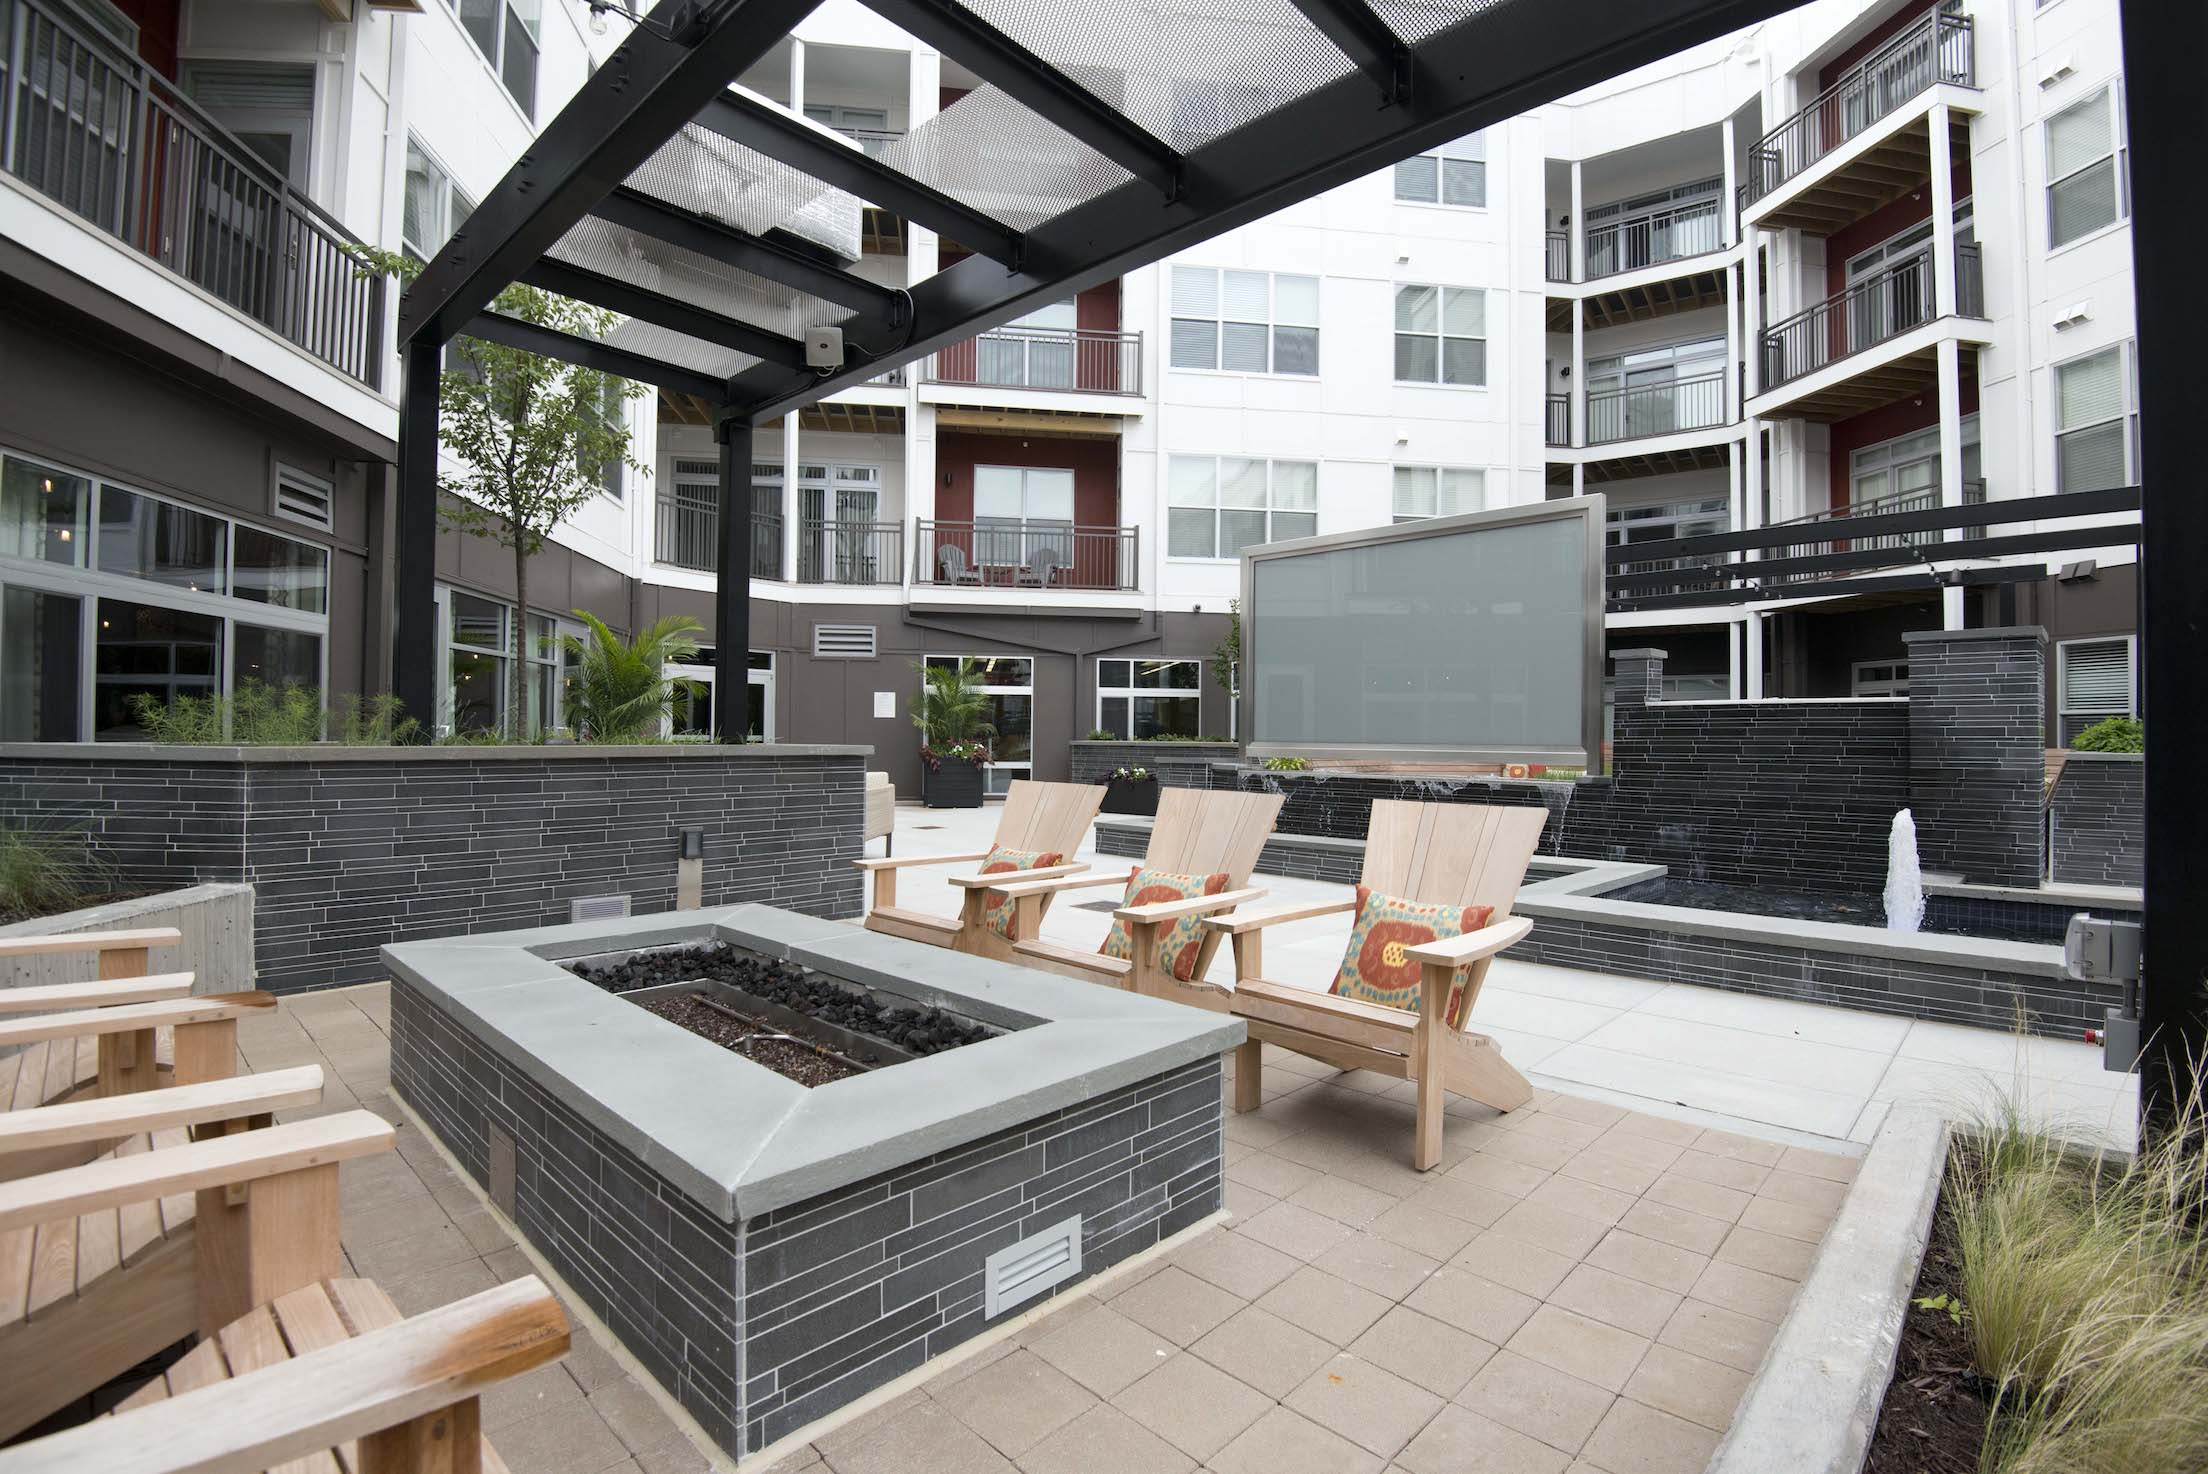 Basalt Interlocking Tile Outdoor Living Firepit & Water Feature Washington, D.C.